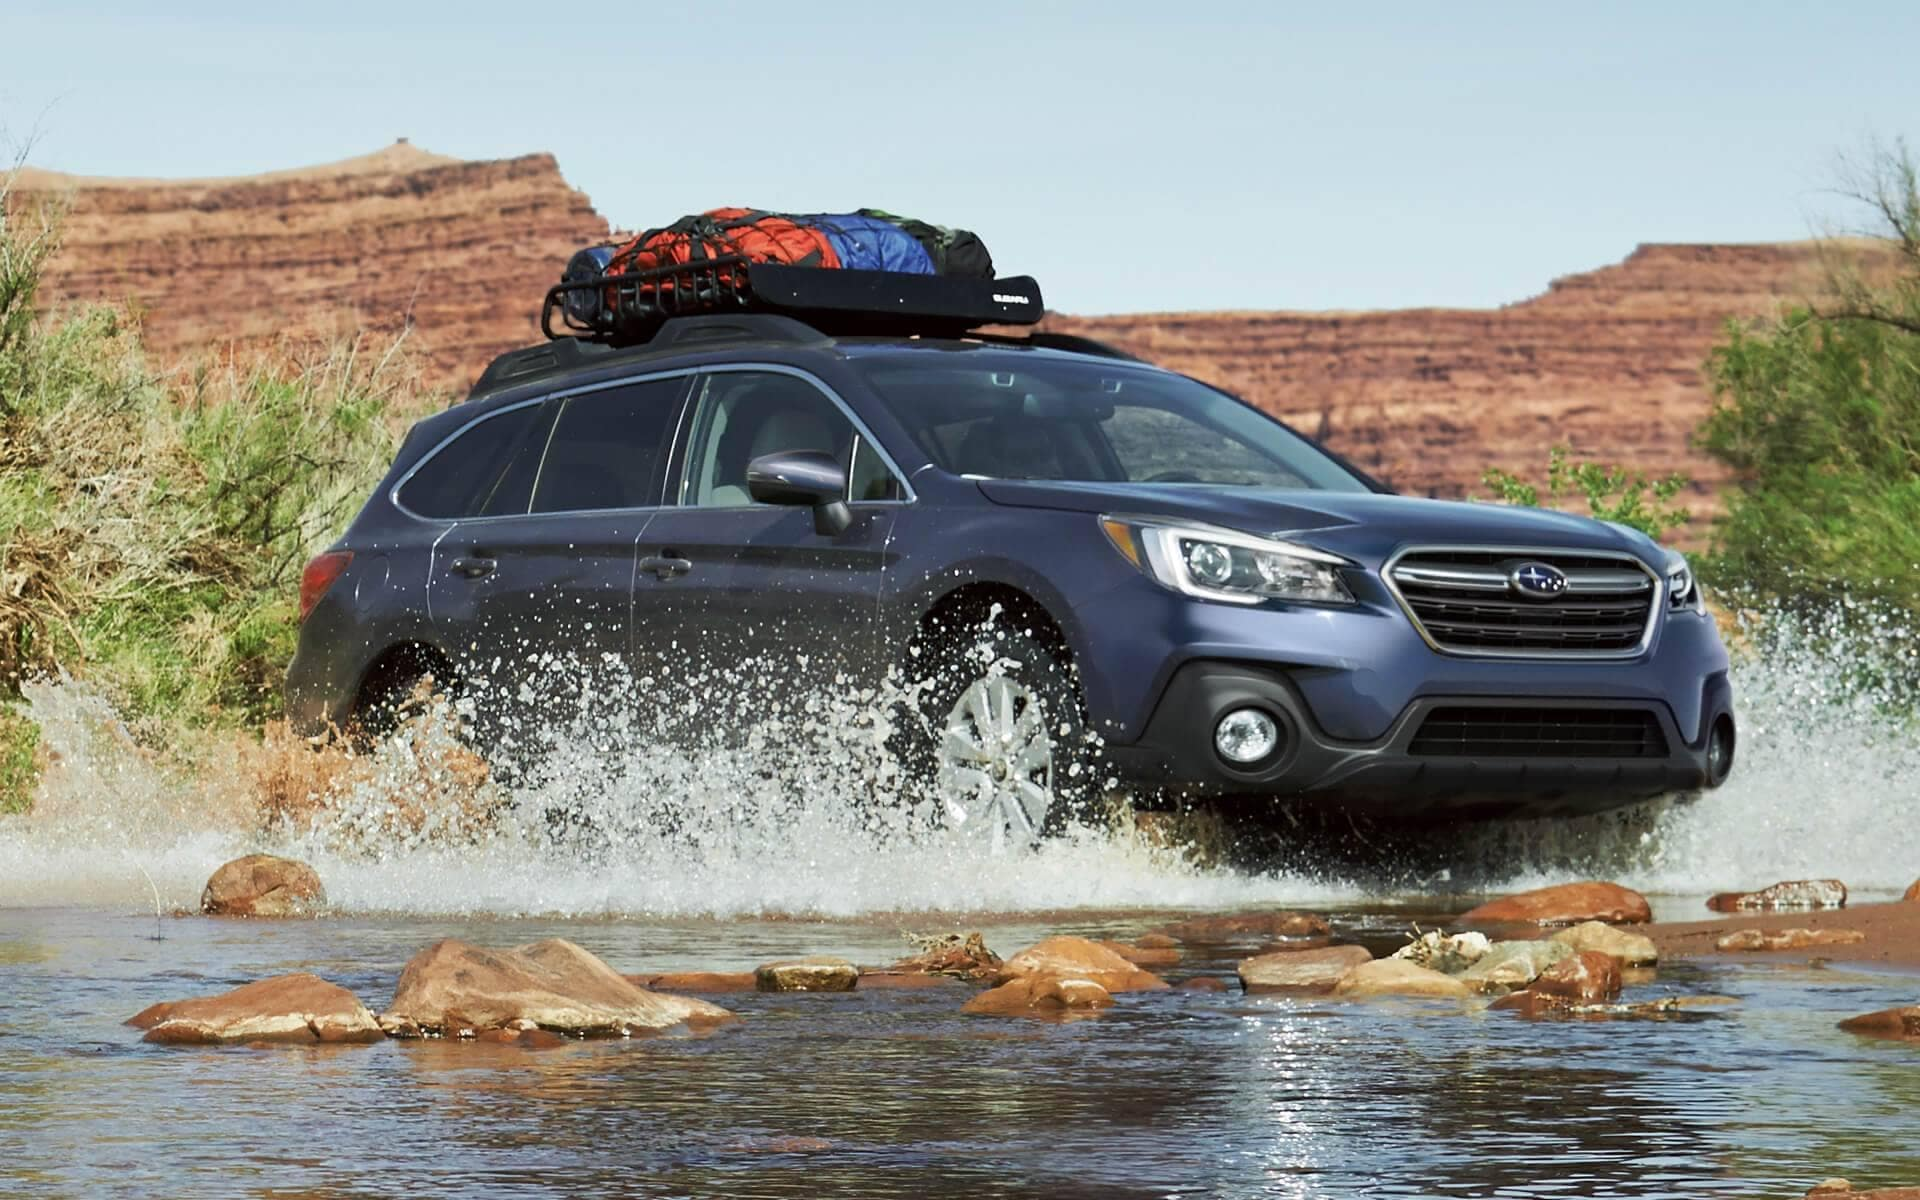 2018 Subaru Outback Exterior driving through water